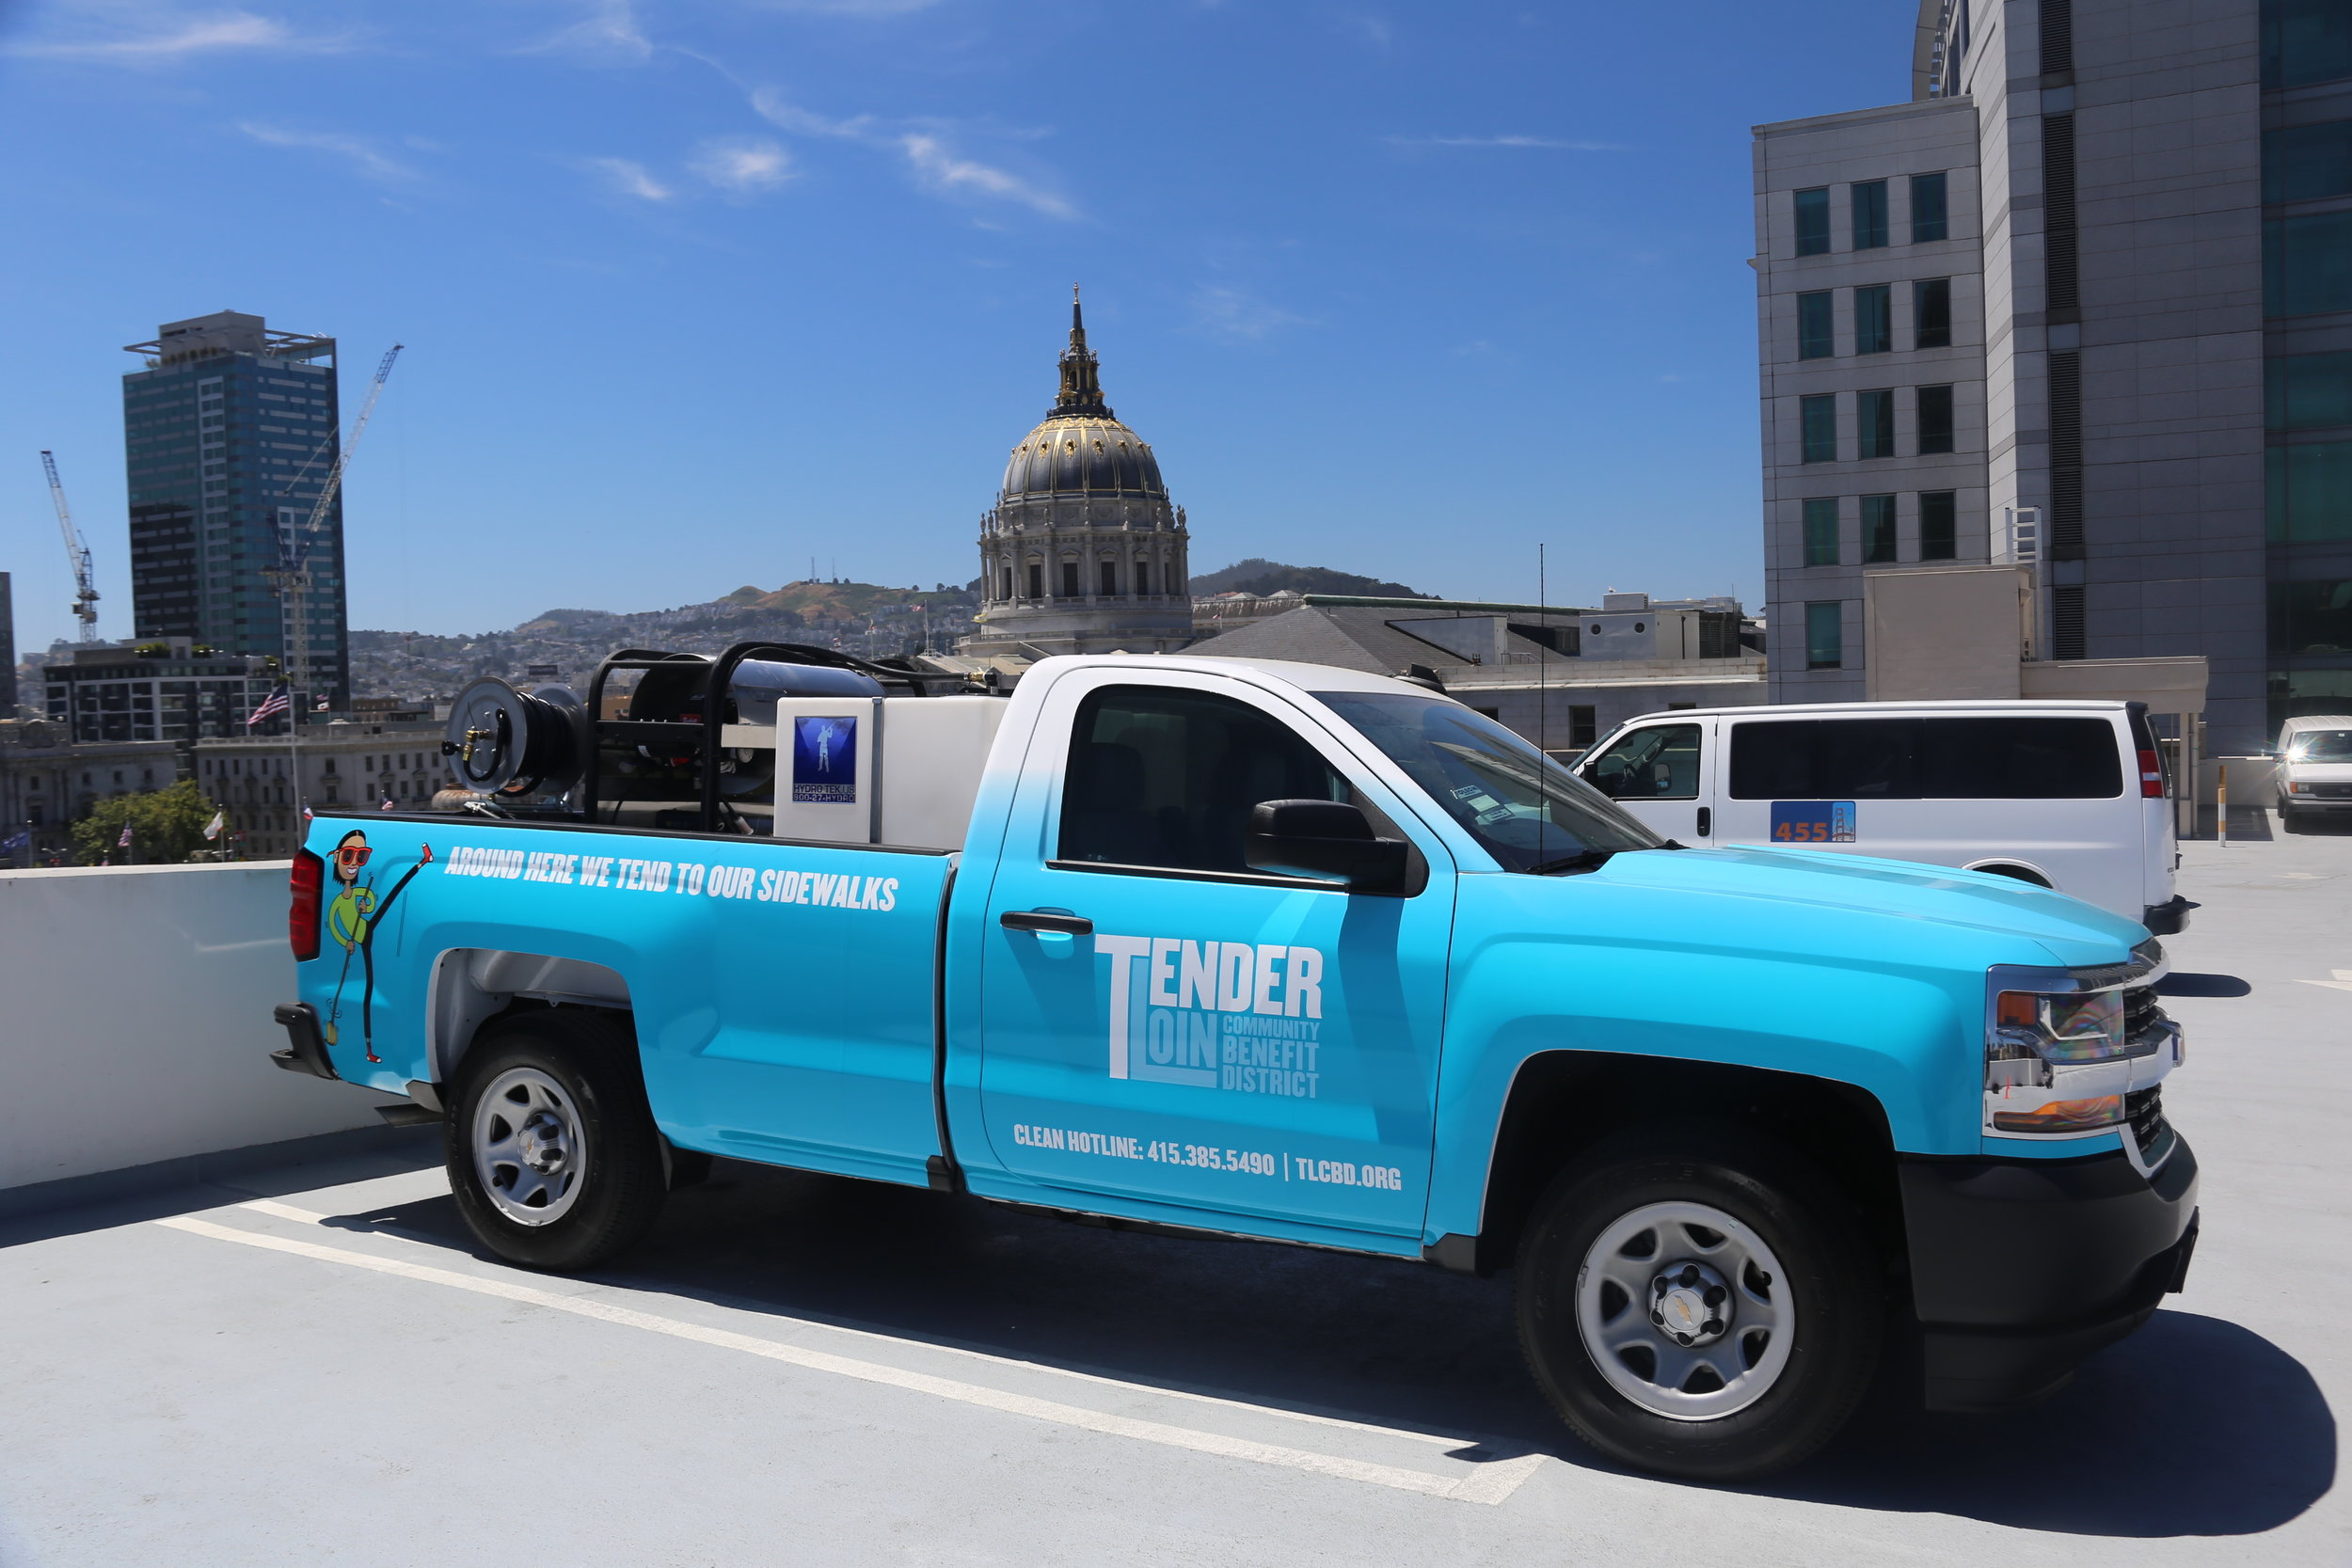 Have you seen these trucks out and about? Say hello to our Clean Team members!